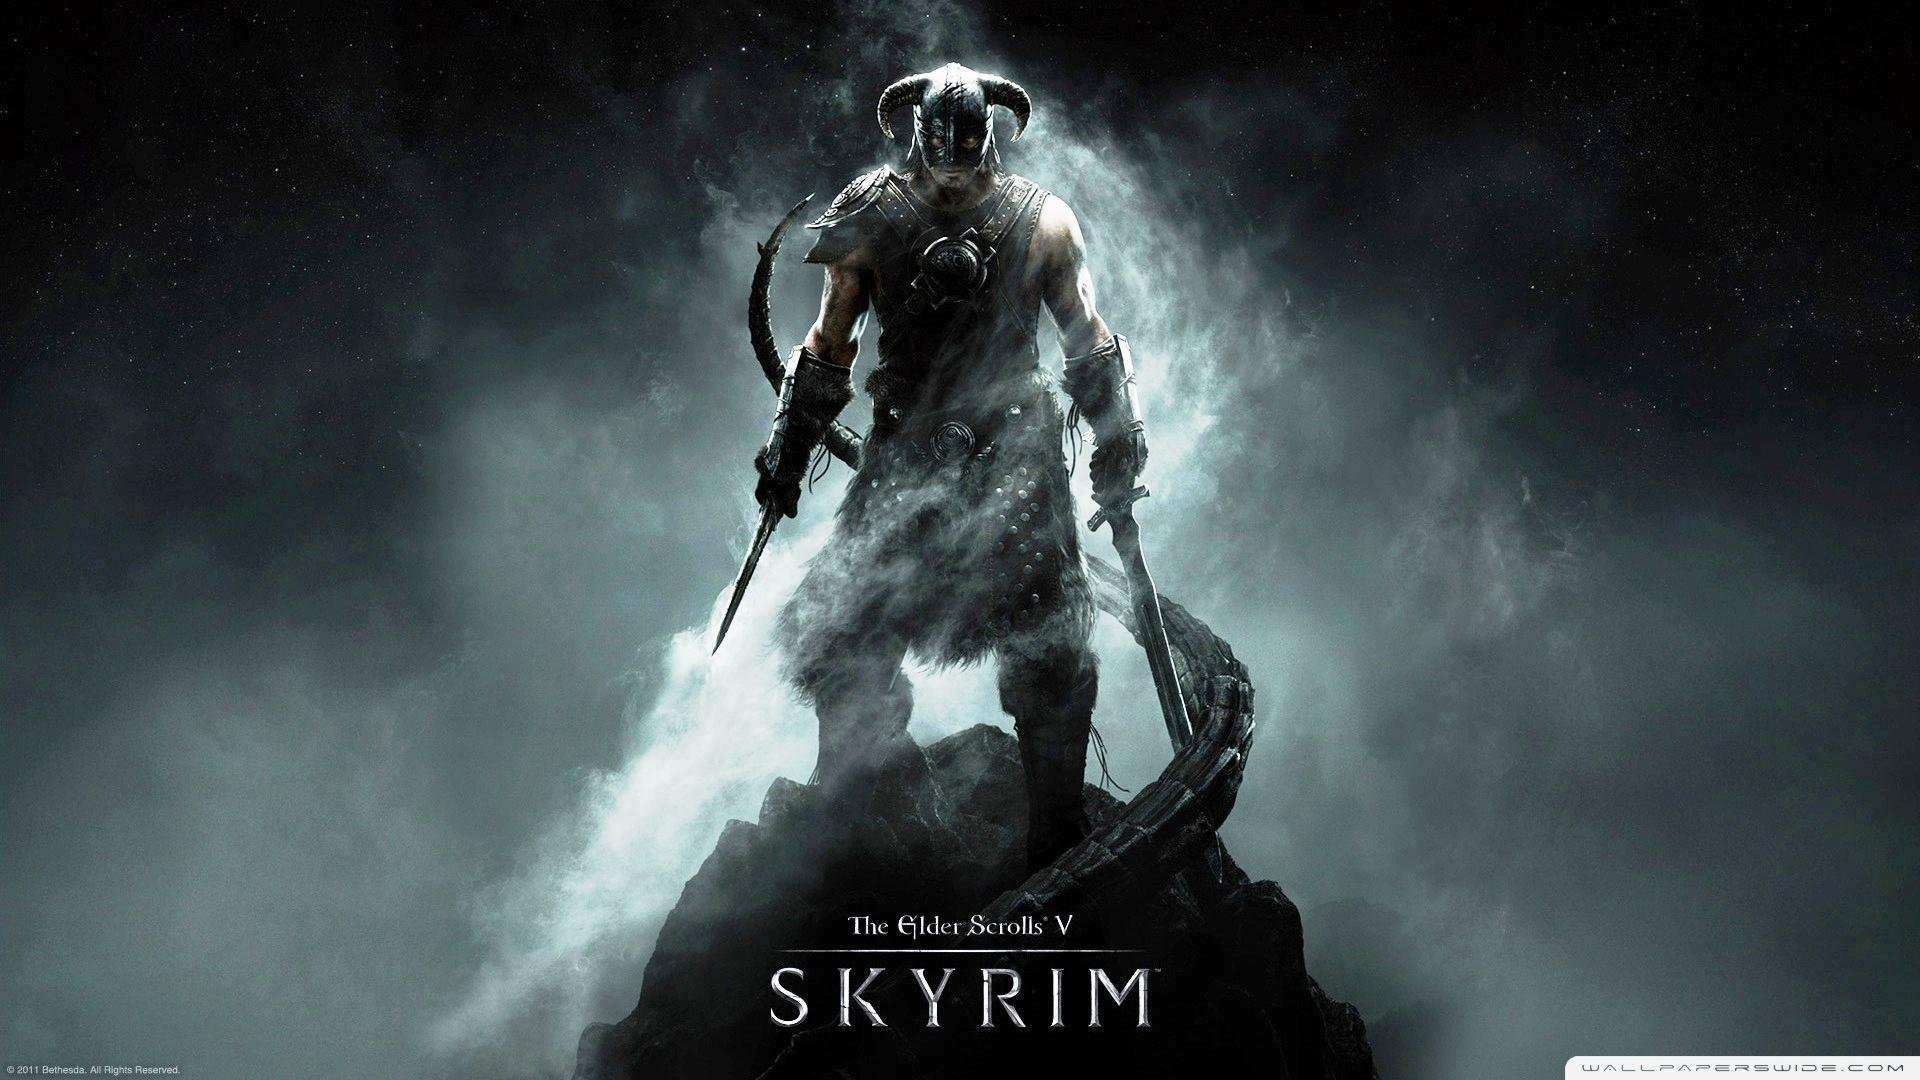 Collection of Best Games Wallpapers on Spyder Wallpapers